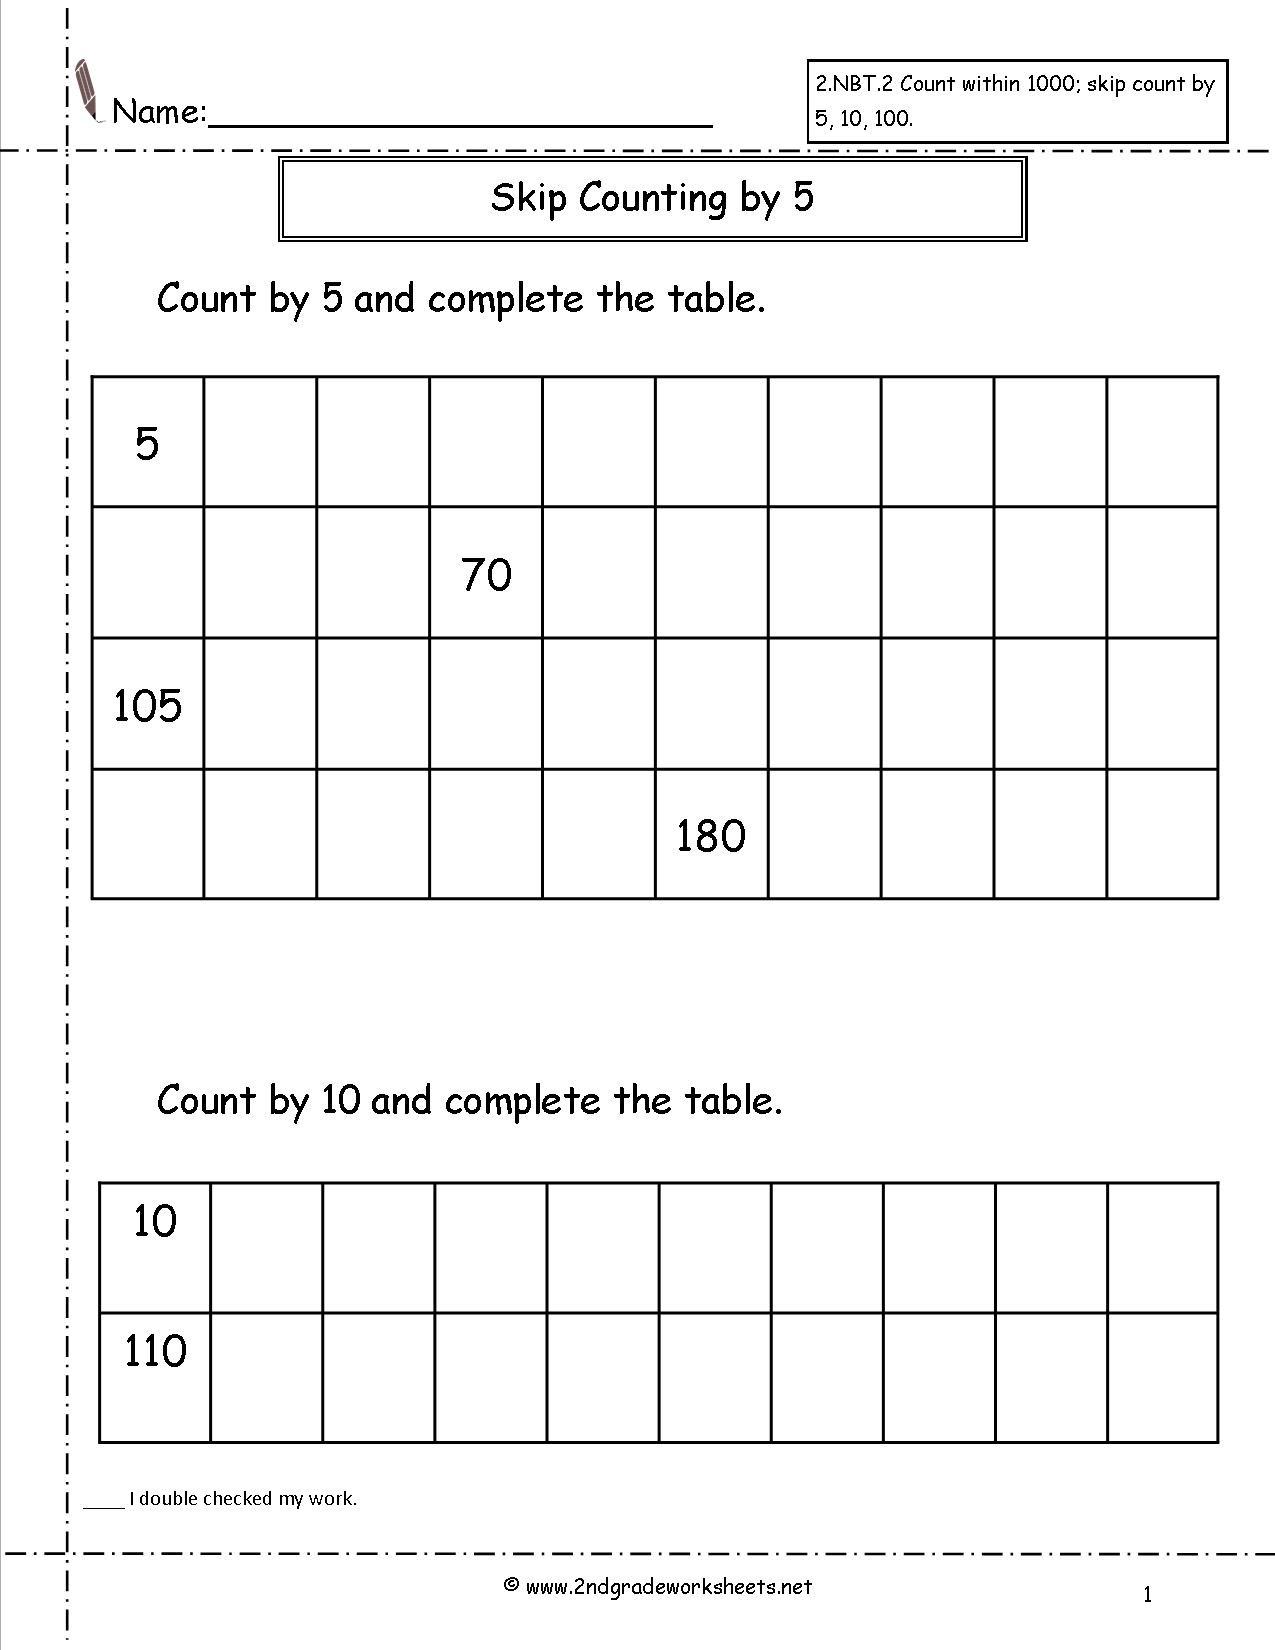 Skip Counting Worksheets First Grade Fun is Fun Printable Two Digit Addition Worksheets Skip